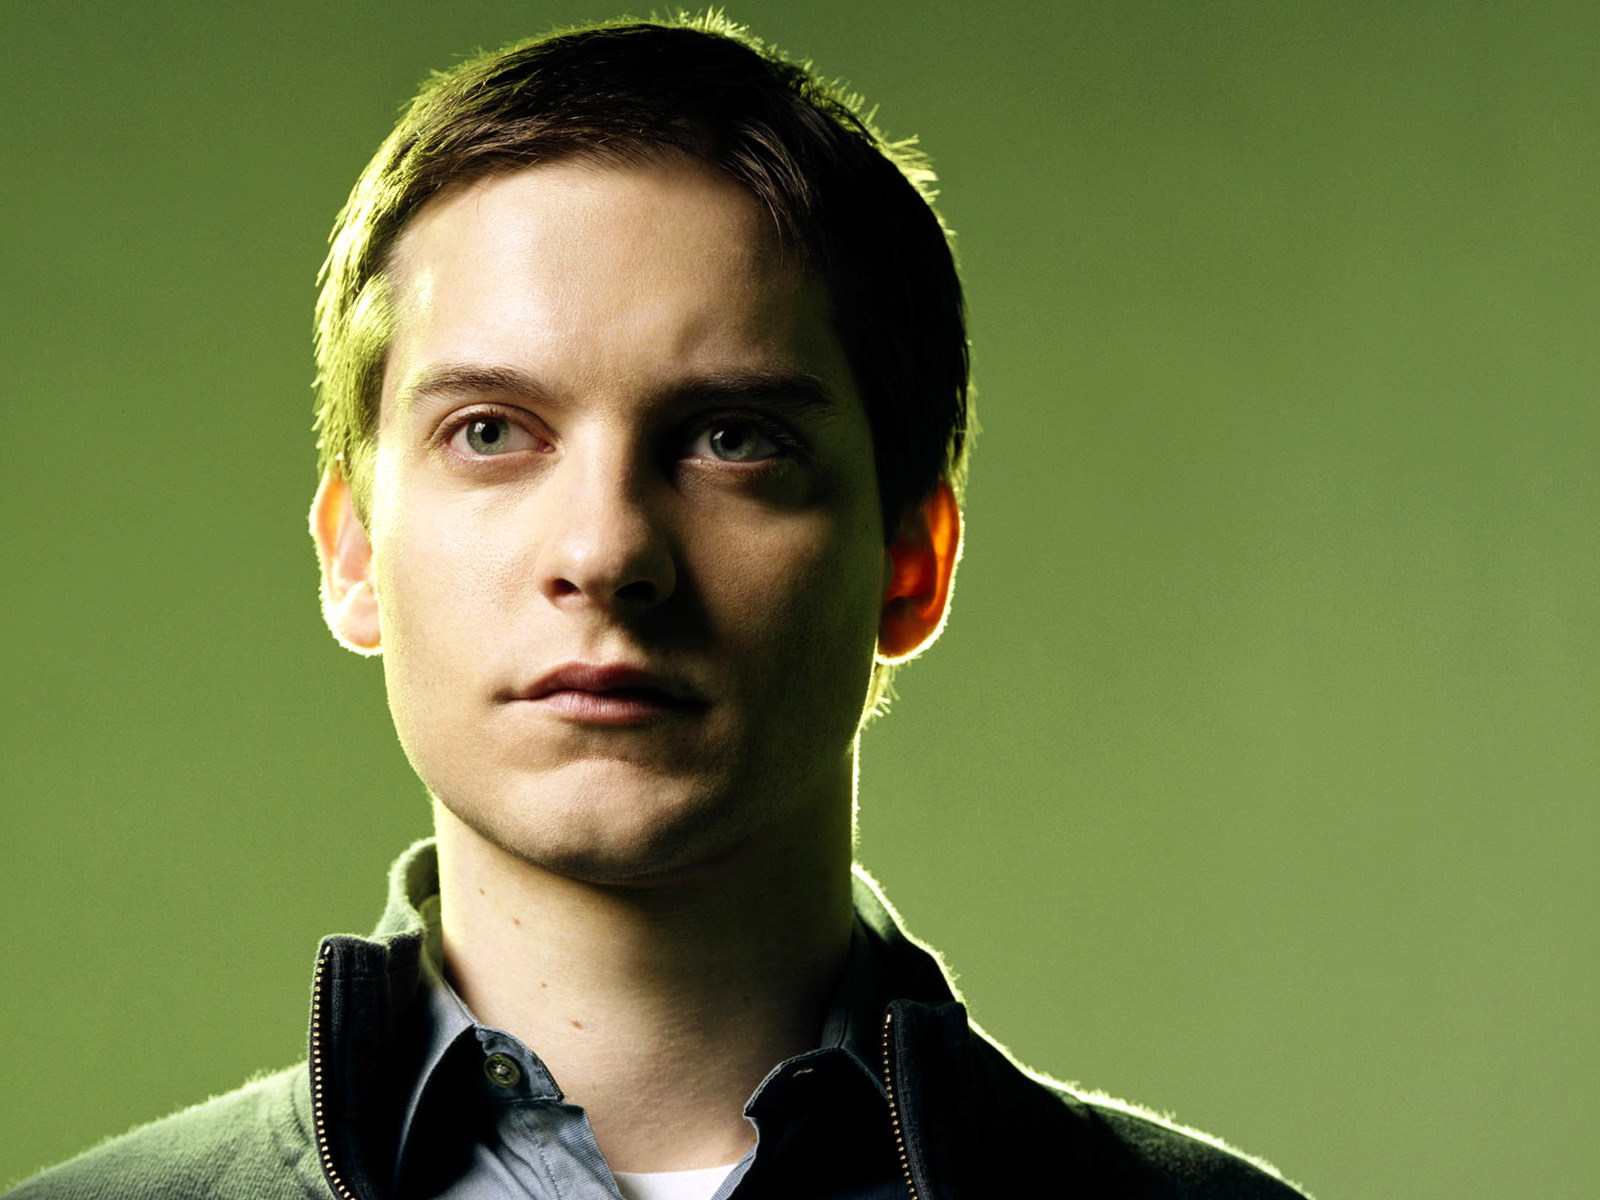 Tobey Maguire Wallpapers